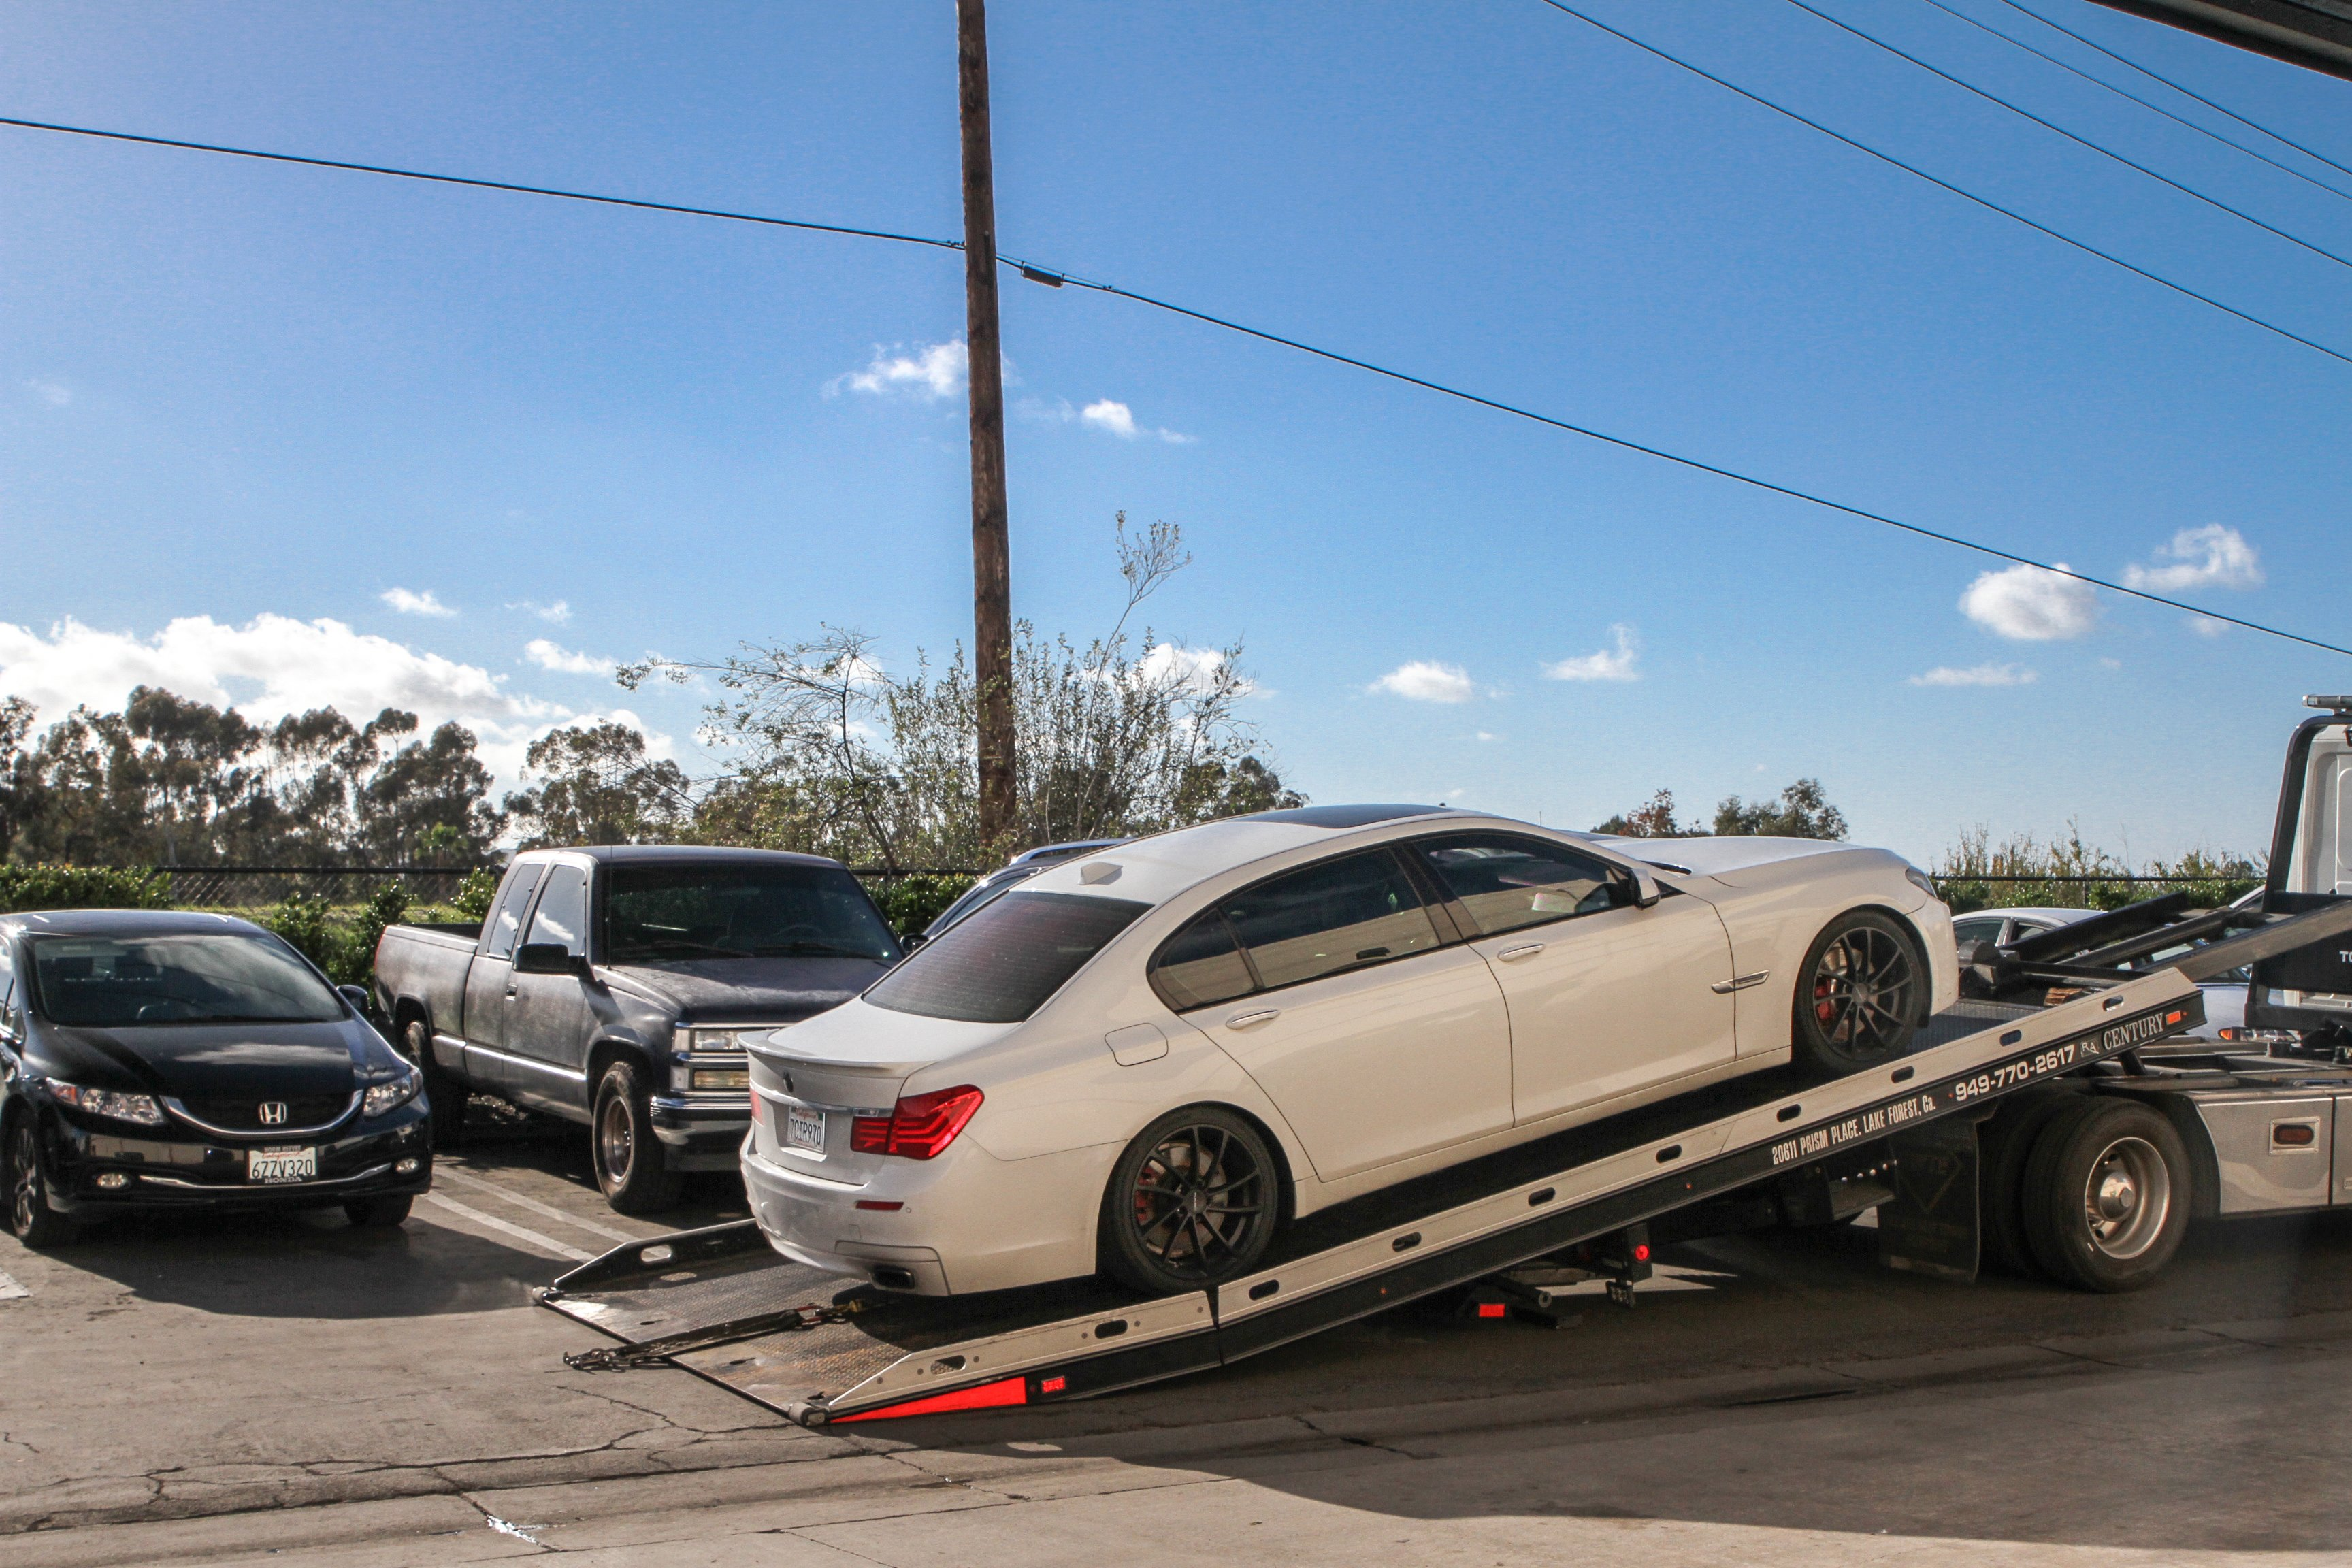 Car towing